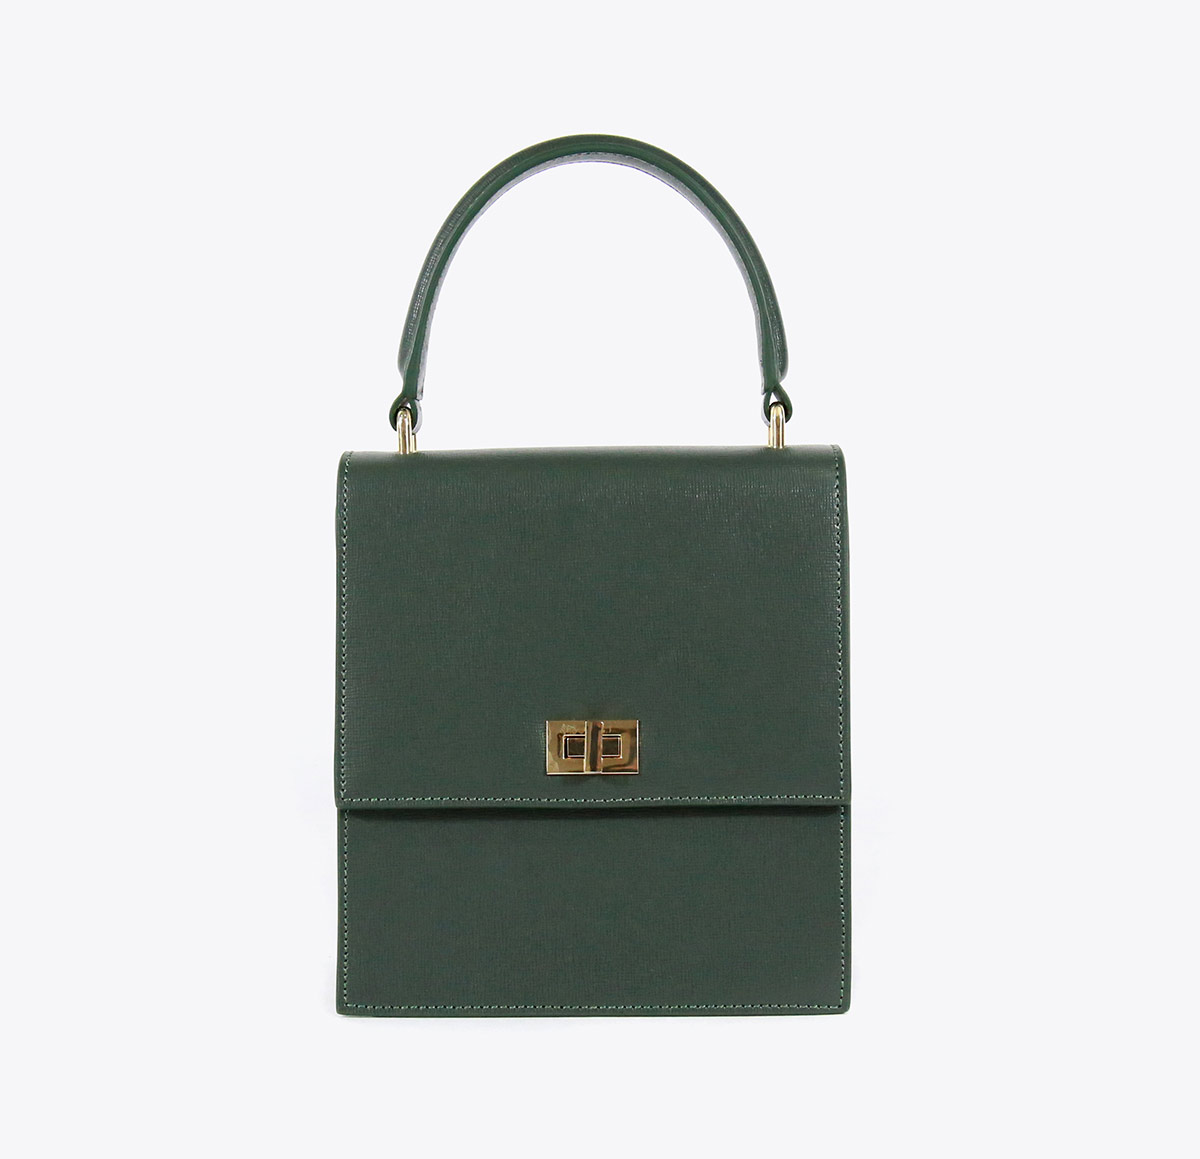 Neely and Chloe Saffiano Lady Bag Green front view